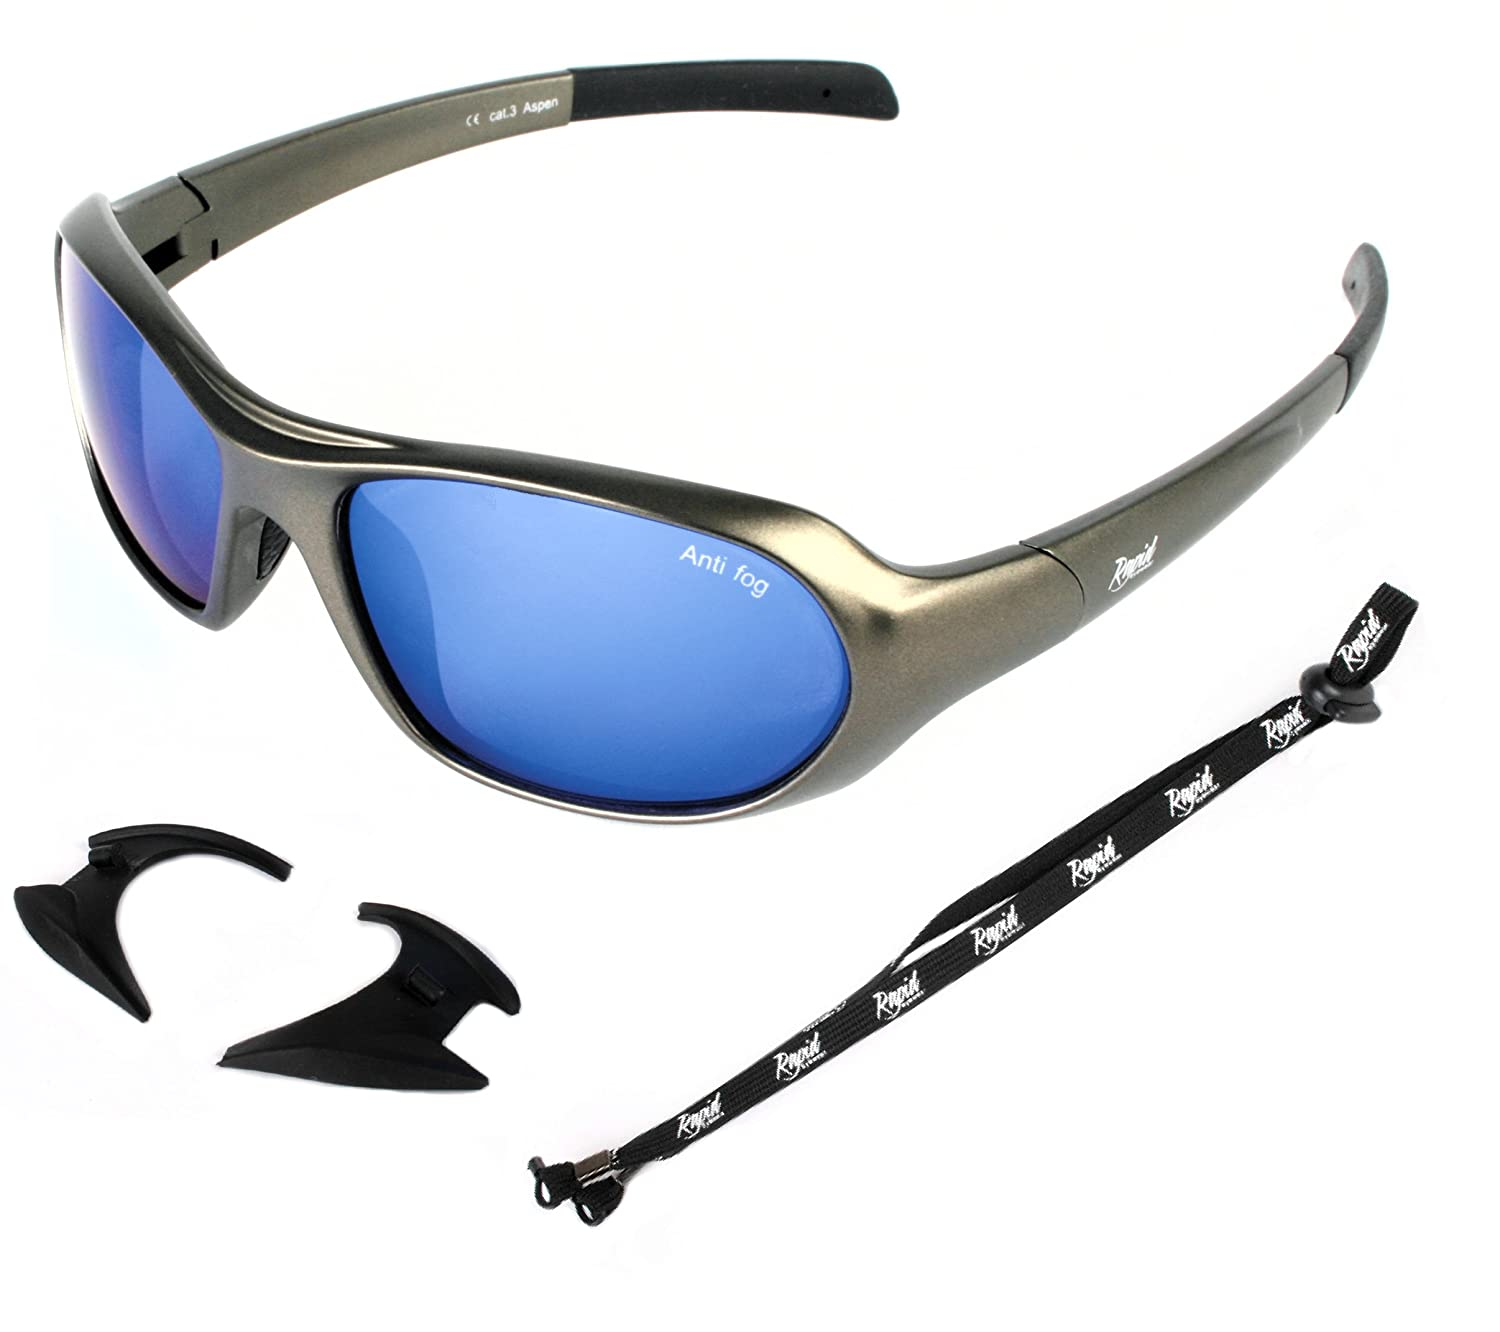 73ed67137678 Rapid Eyewear Aspen SKIING GLACIER AND EXTREME SPORT SUNGLASSES   GOGGLES  Anti Fog Blue Mirror Lenses and Retainer Strap for Men and Women.